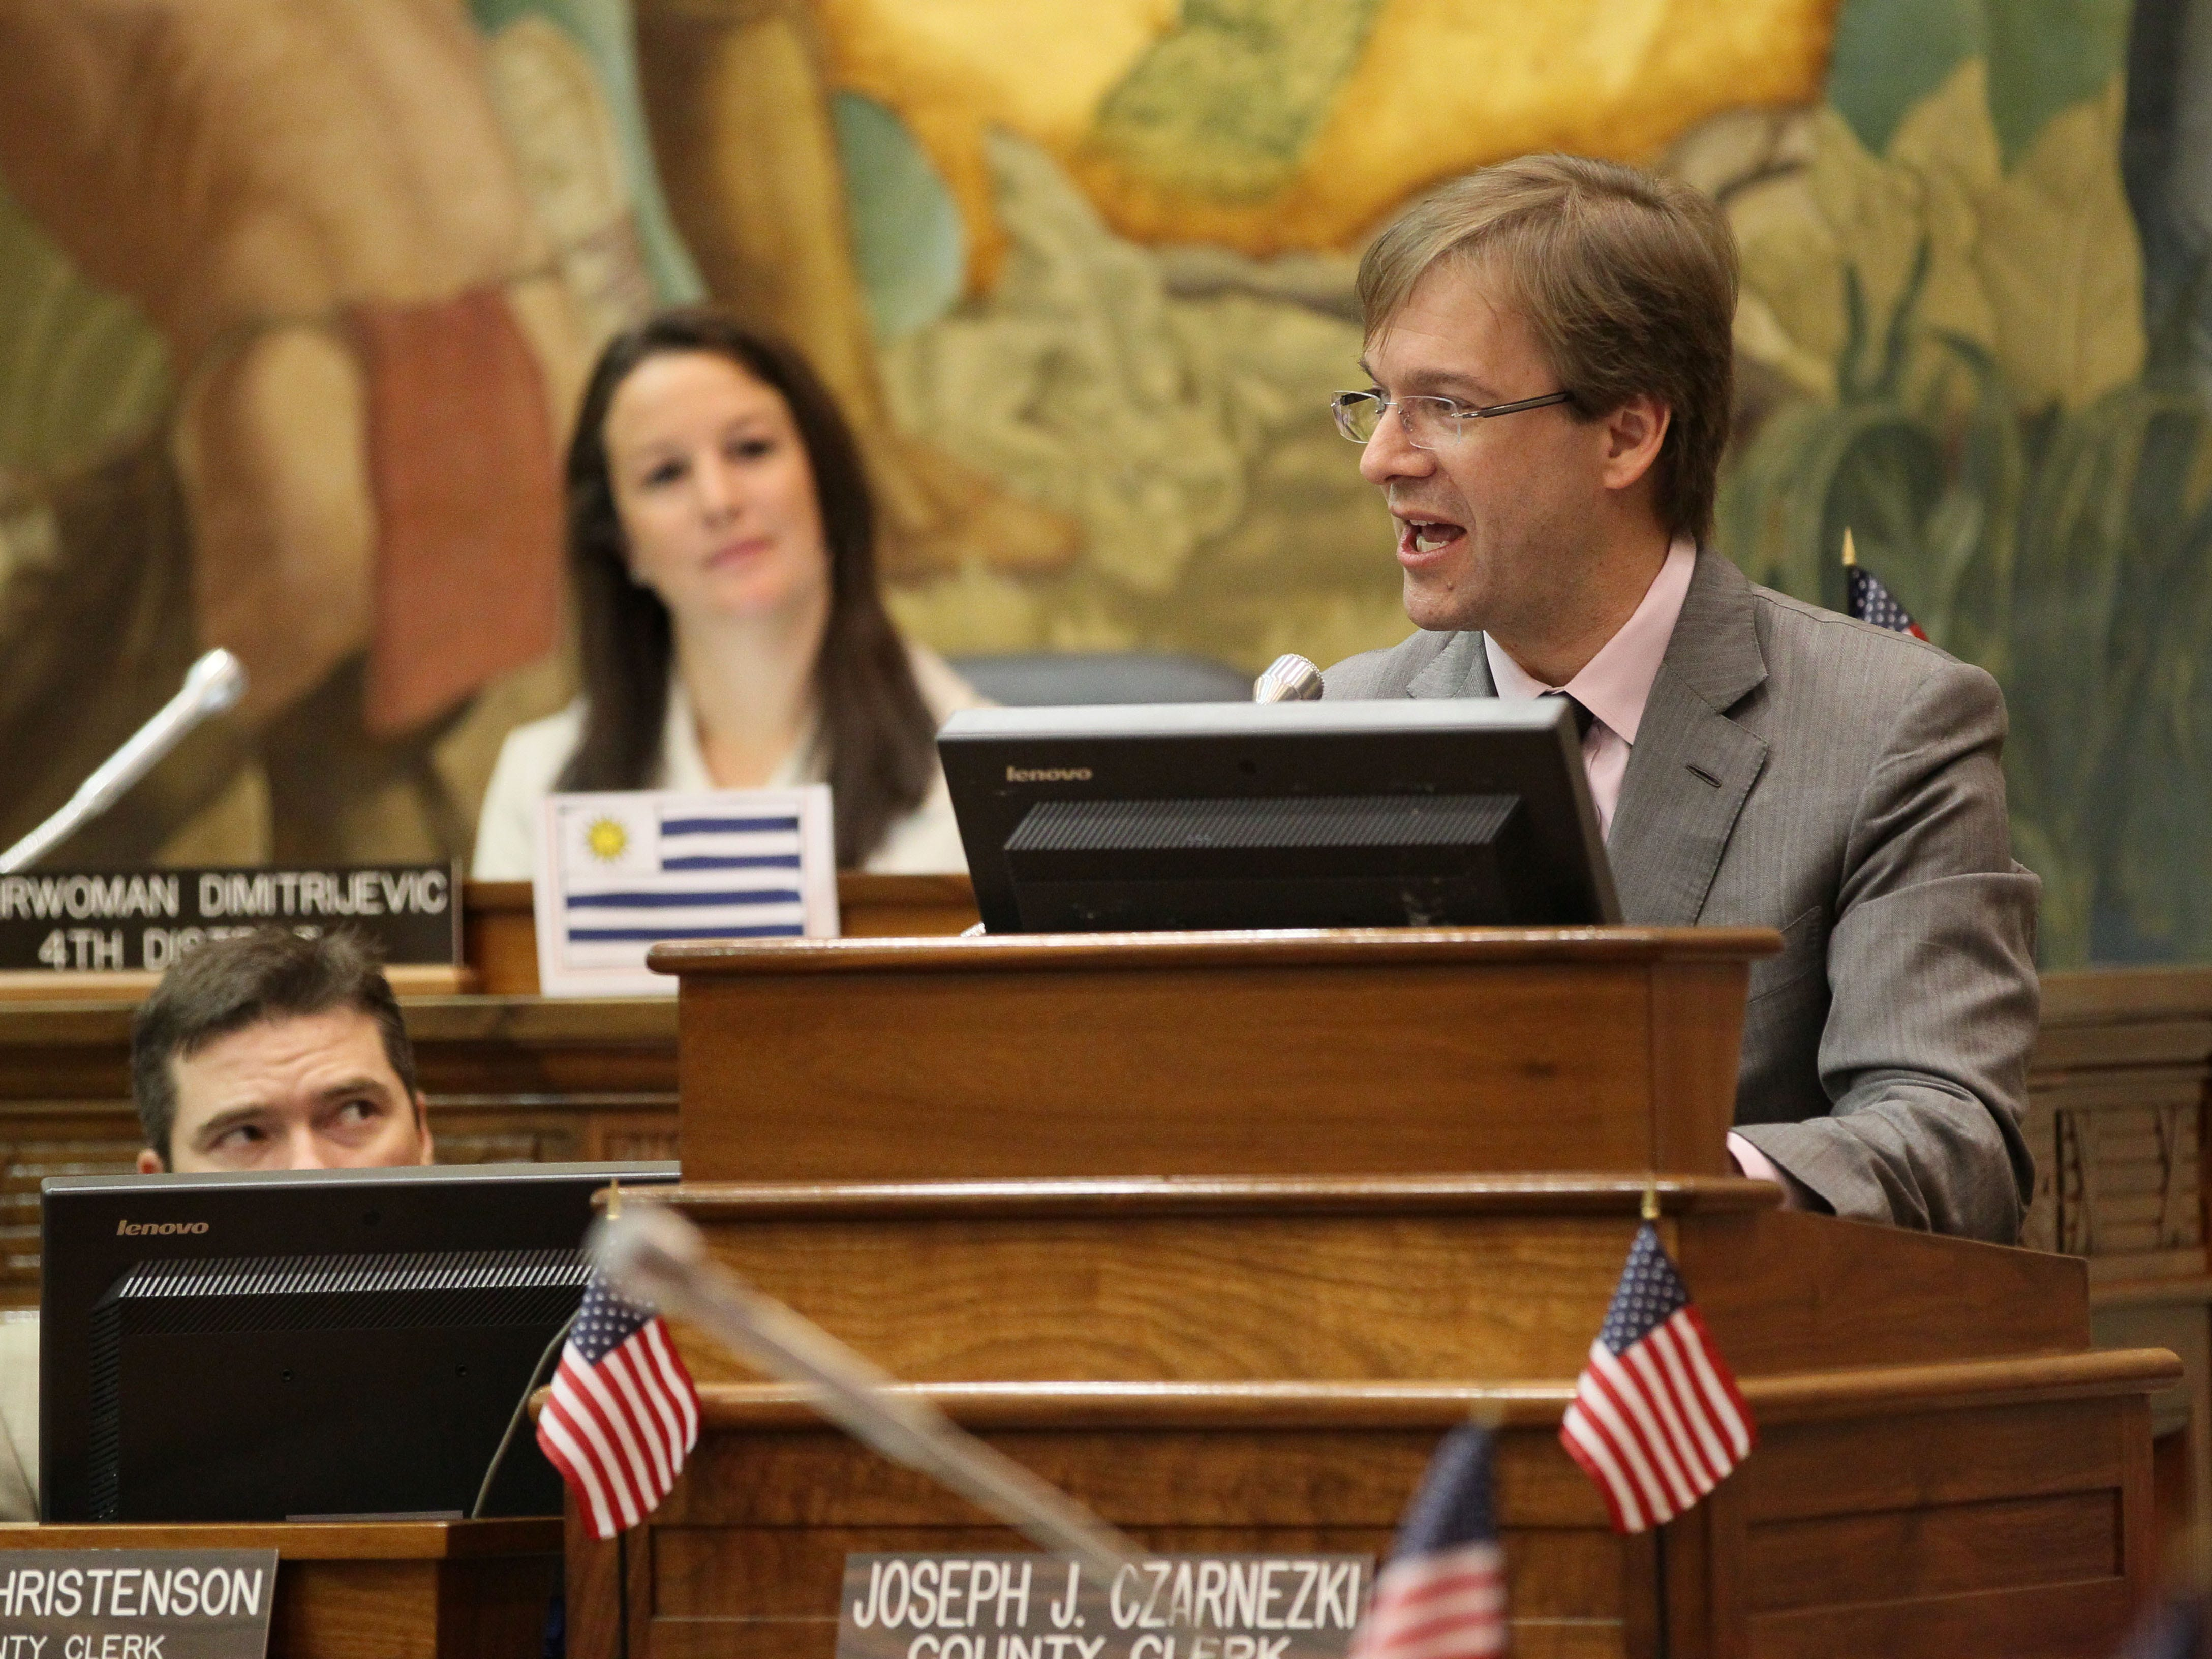 2012: Milwaukee County Executive Chris Abele delivers his budget speech before the Milwaukee County Board.